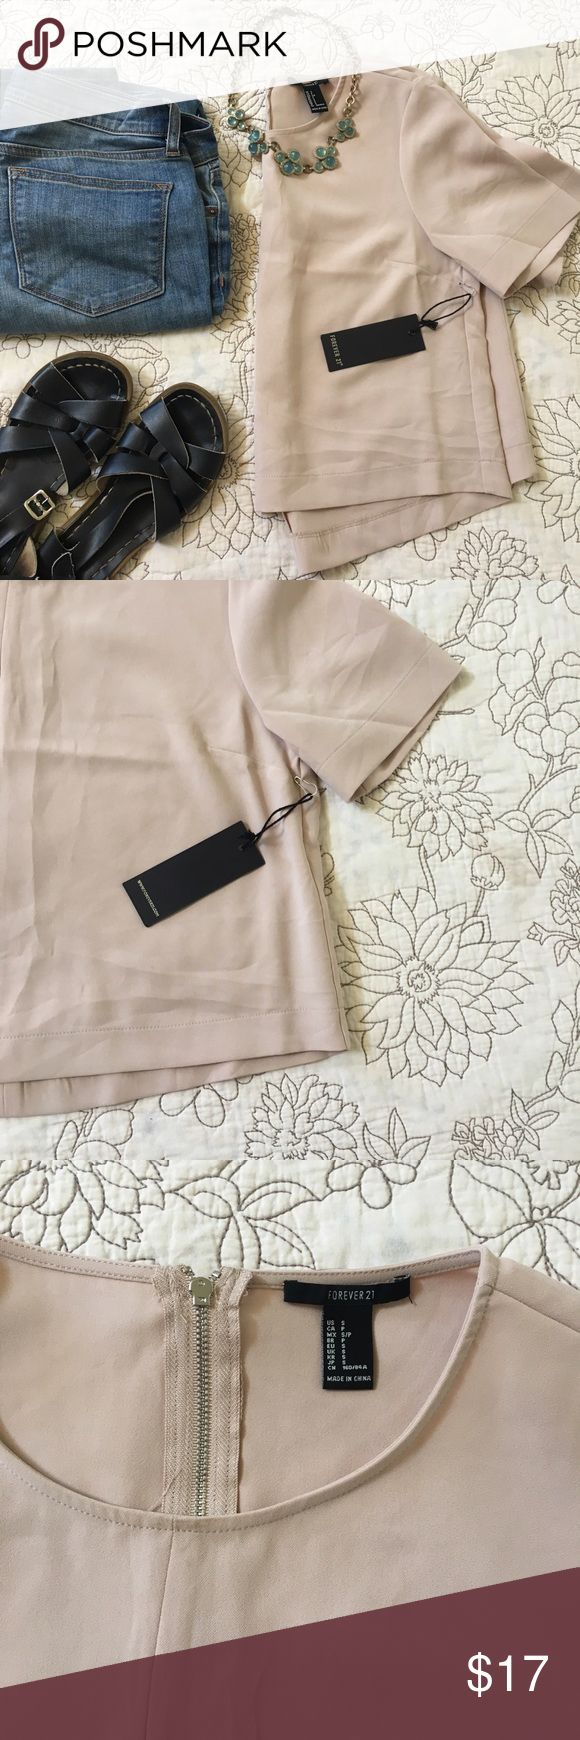 NWT Forever 21 Cream Crop Top - S Classy cropped top, new with tags! Chiffon/silk like material. Really cute on and styled with high waisted jeans or skirt! Forever 21 Tops Crop Tops